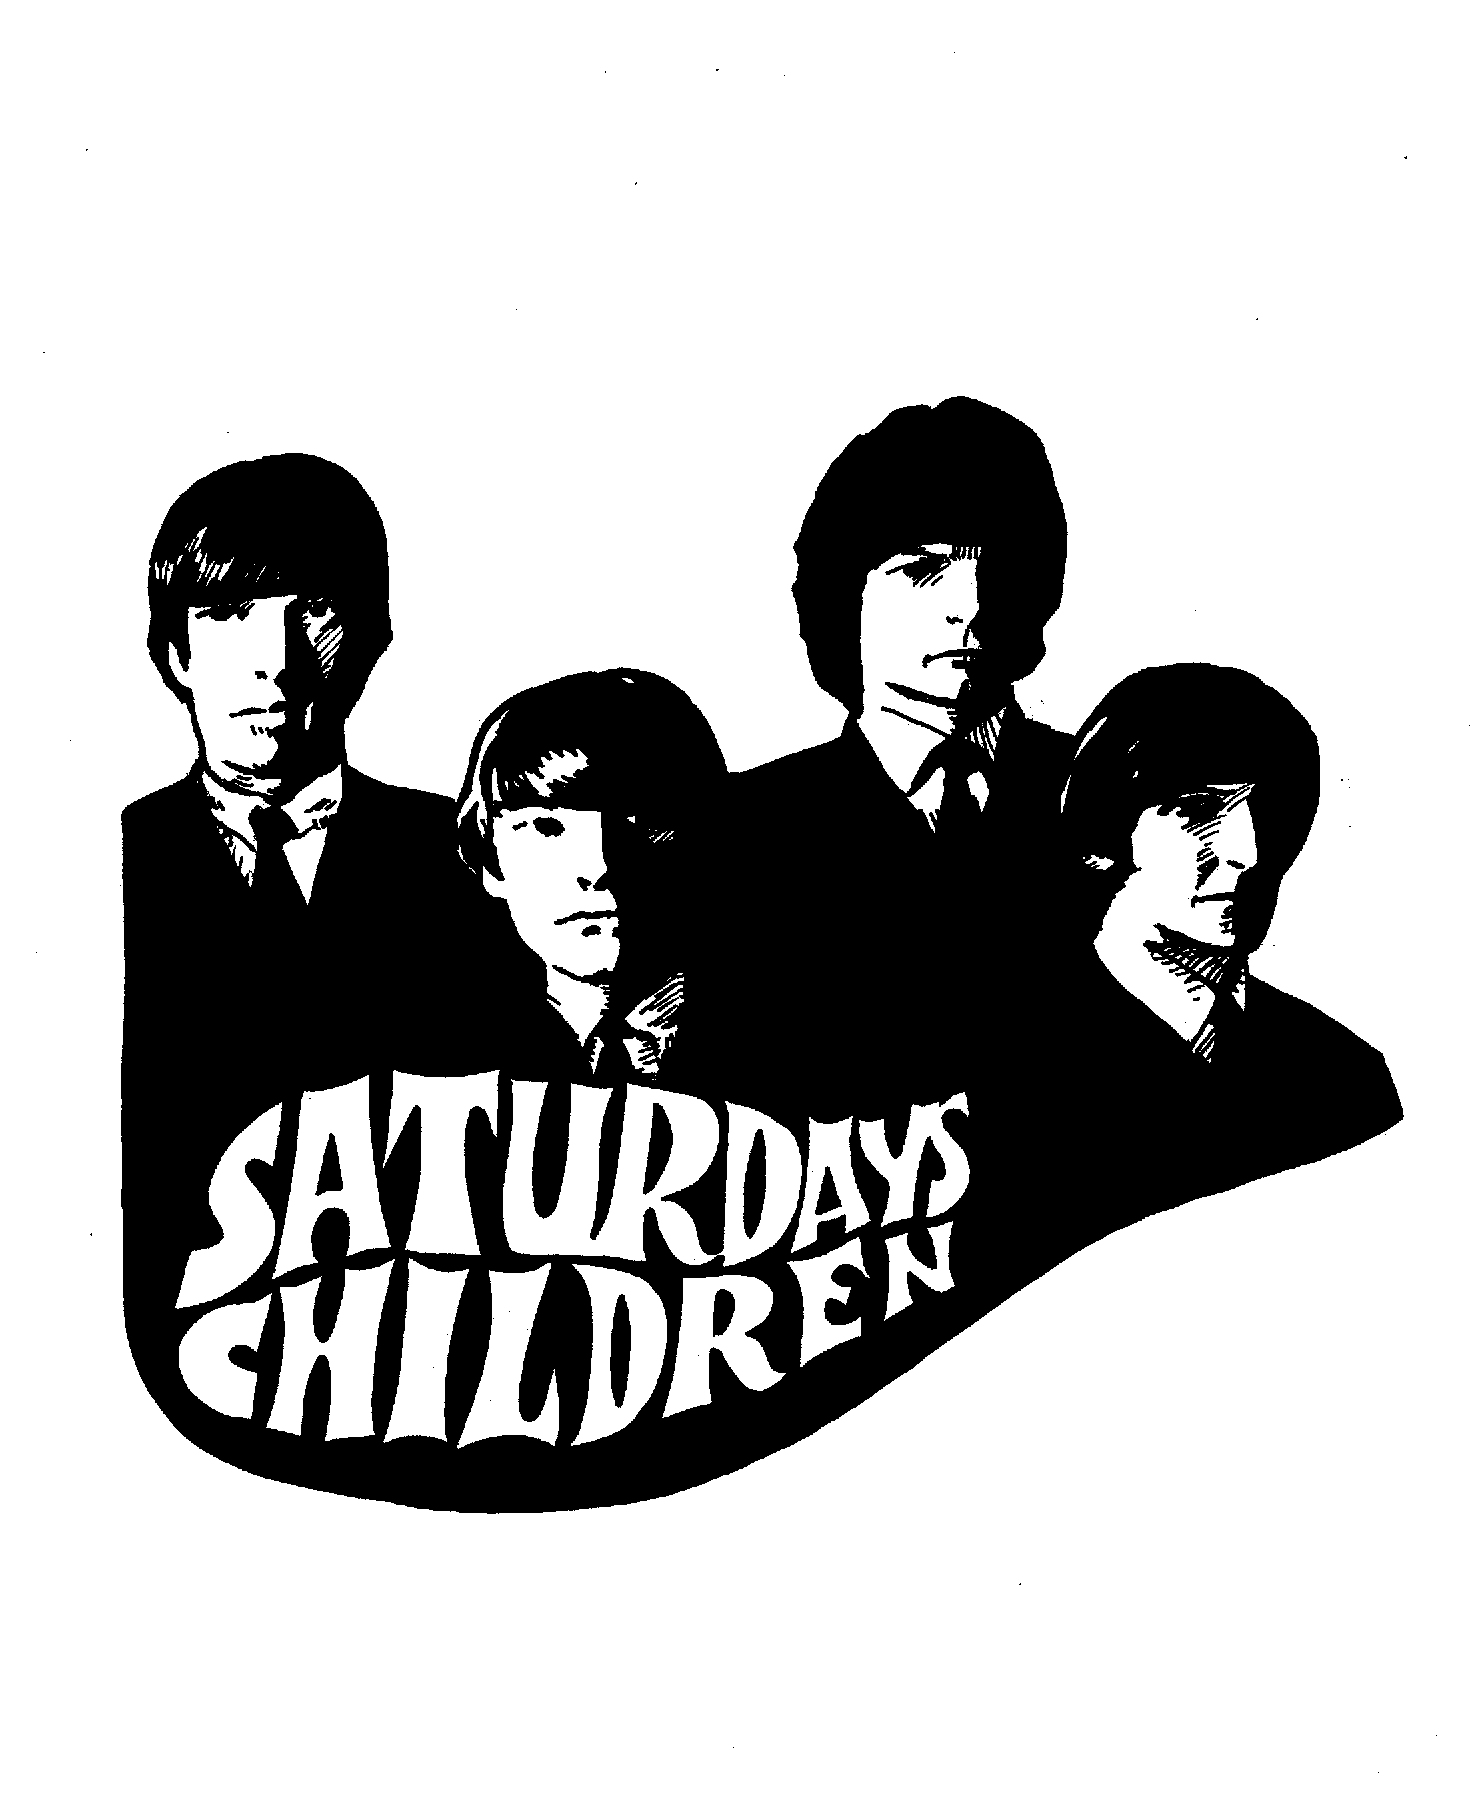 $250, Saturday's Children and logo used in Secret History of Chicago Music